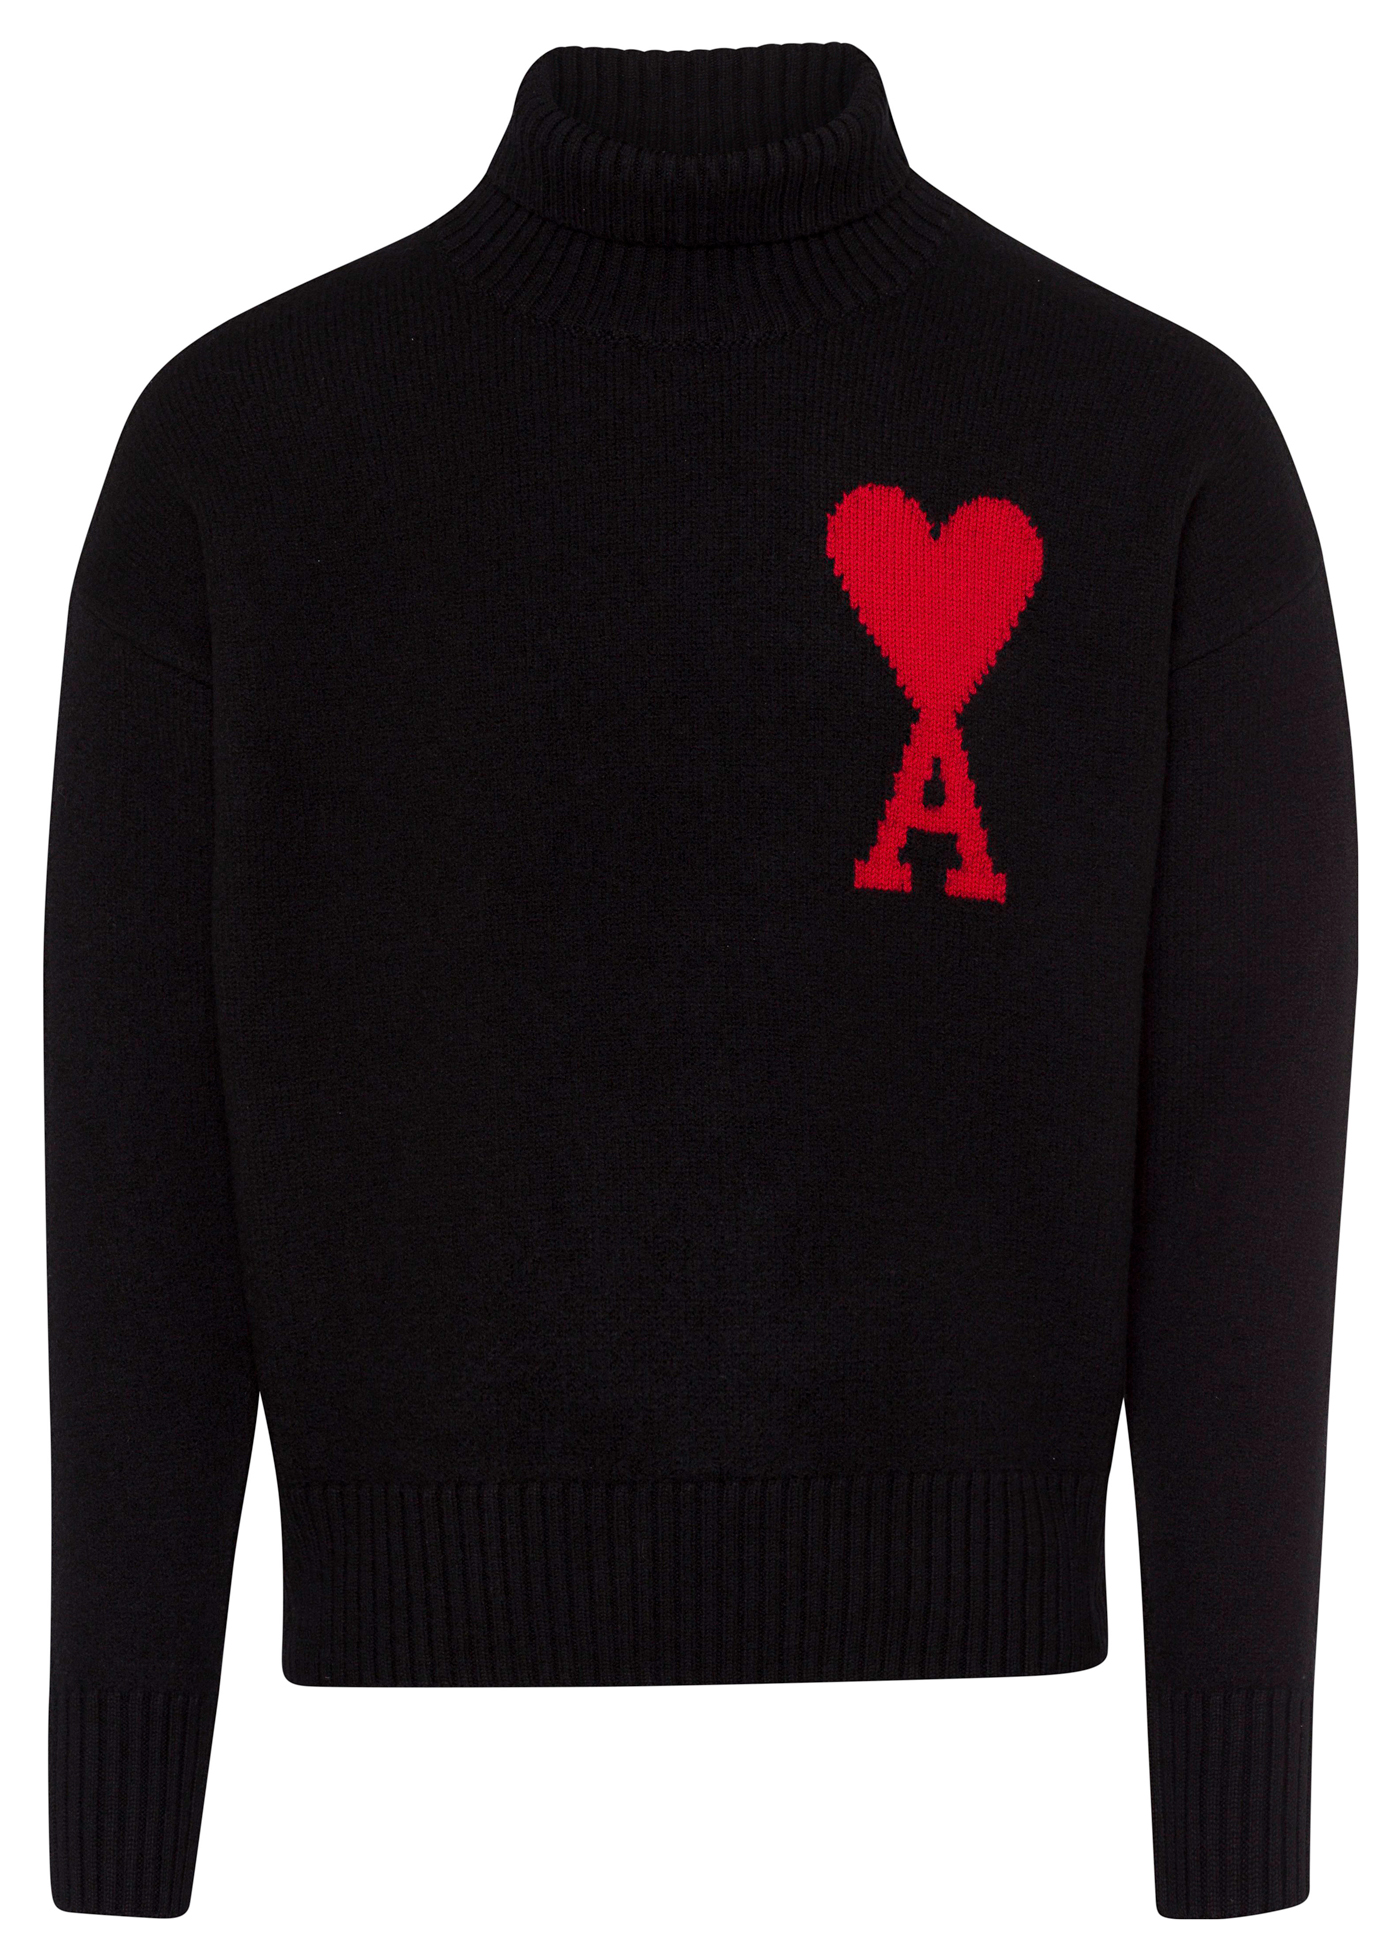 ADC TURTLENECK SWEATER image number 0